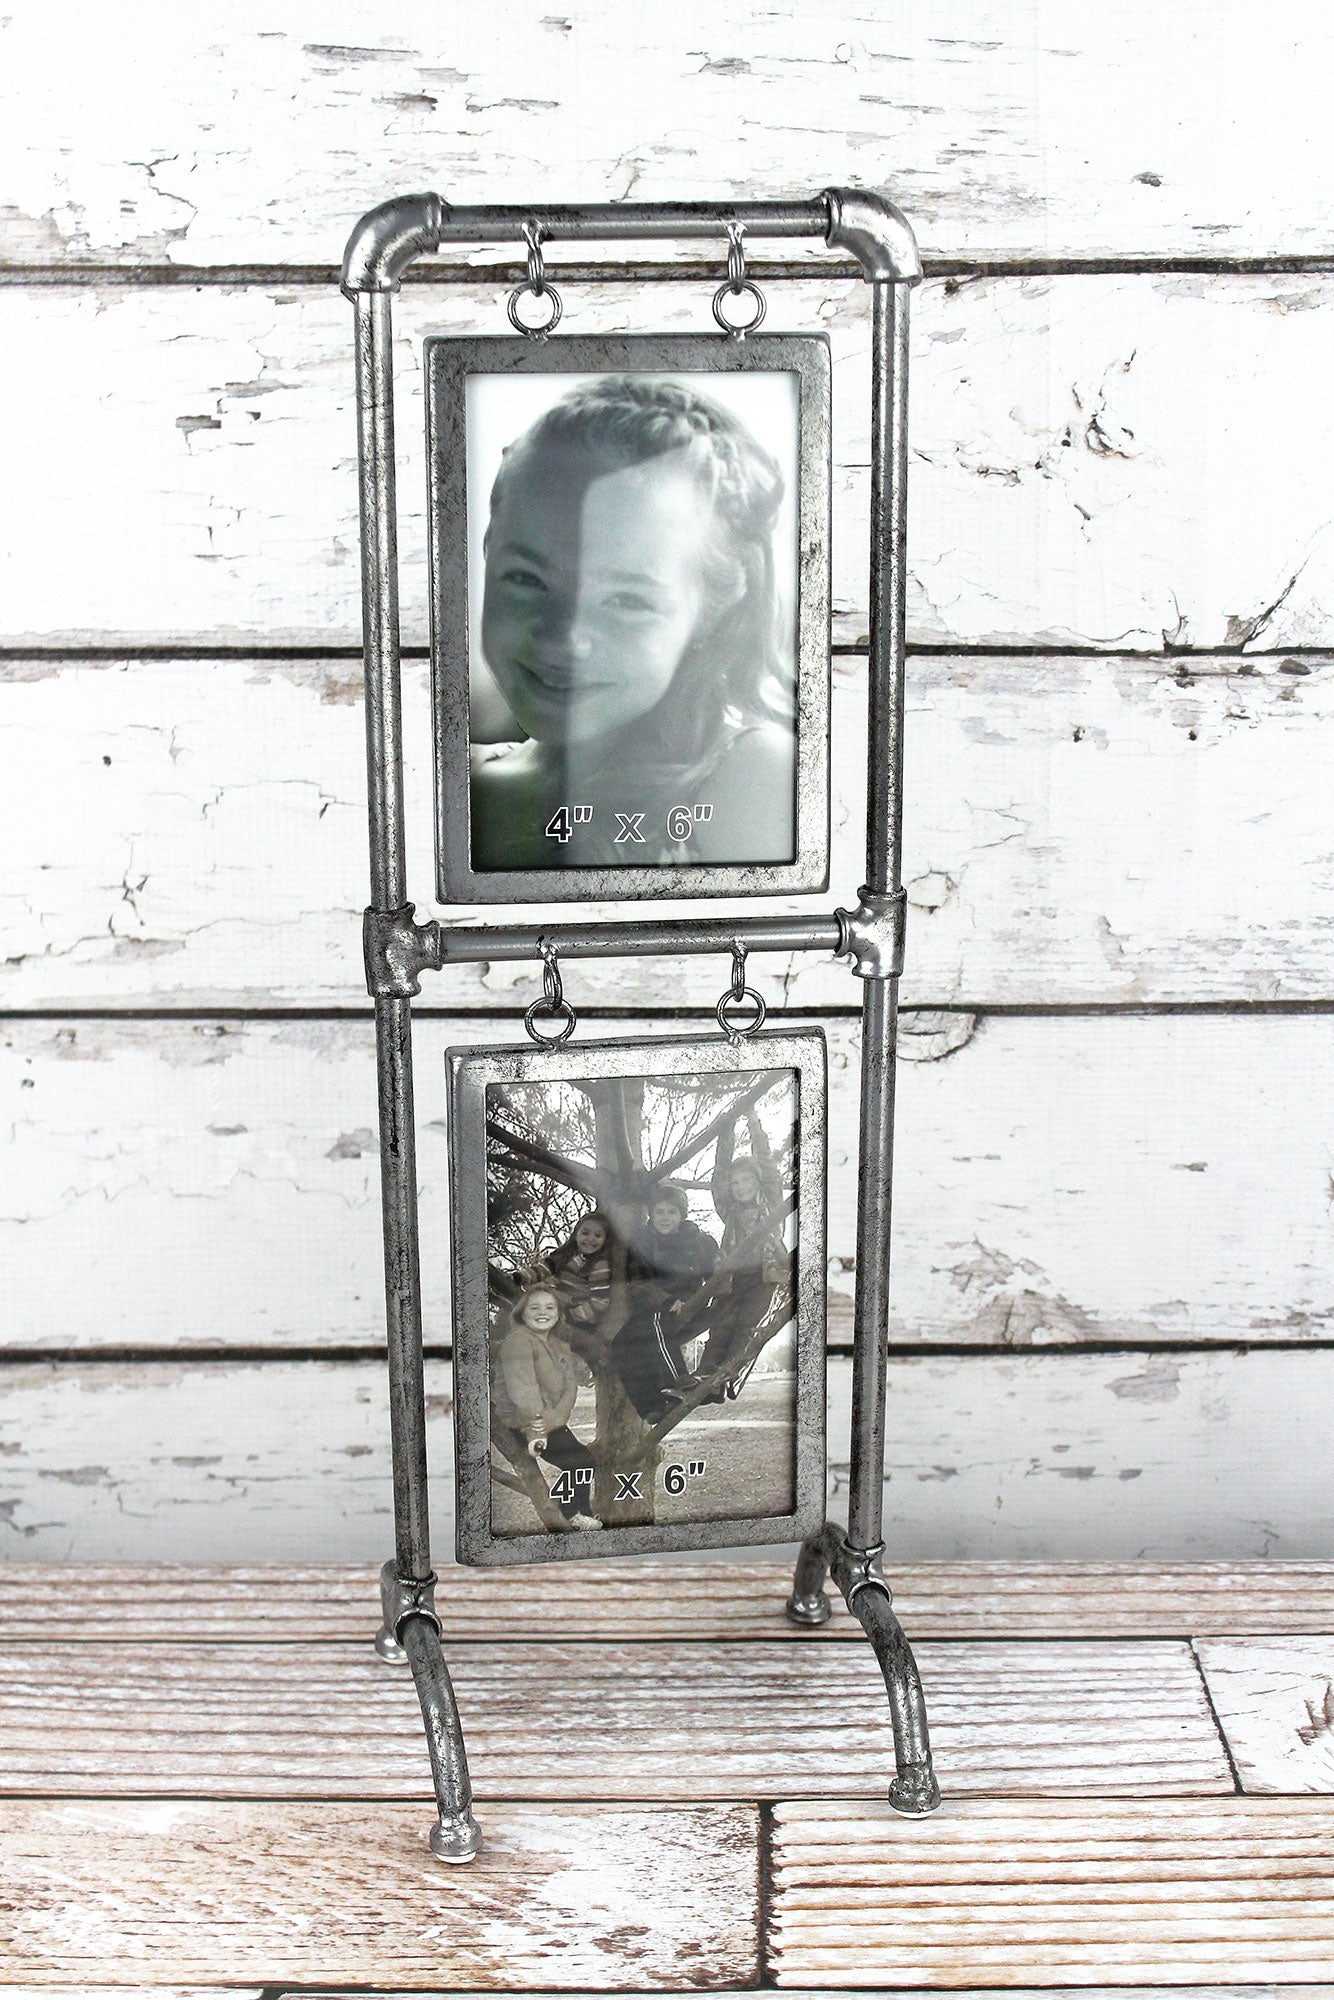 18 x 6 Antiqued Metal Double 4x6 Photo Frame | eWAM